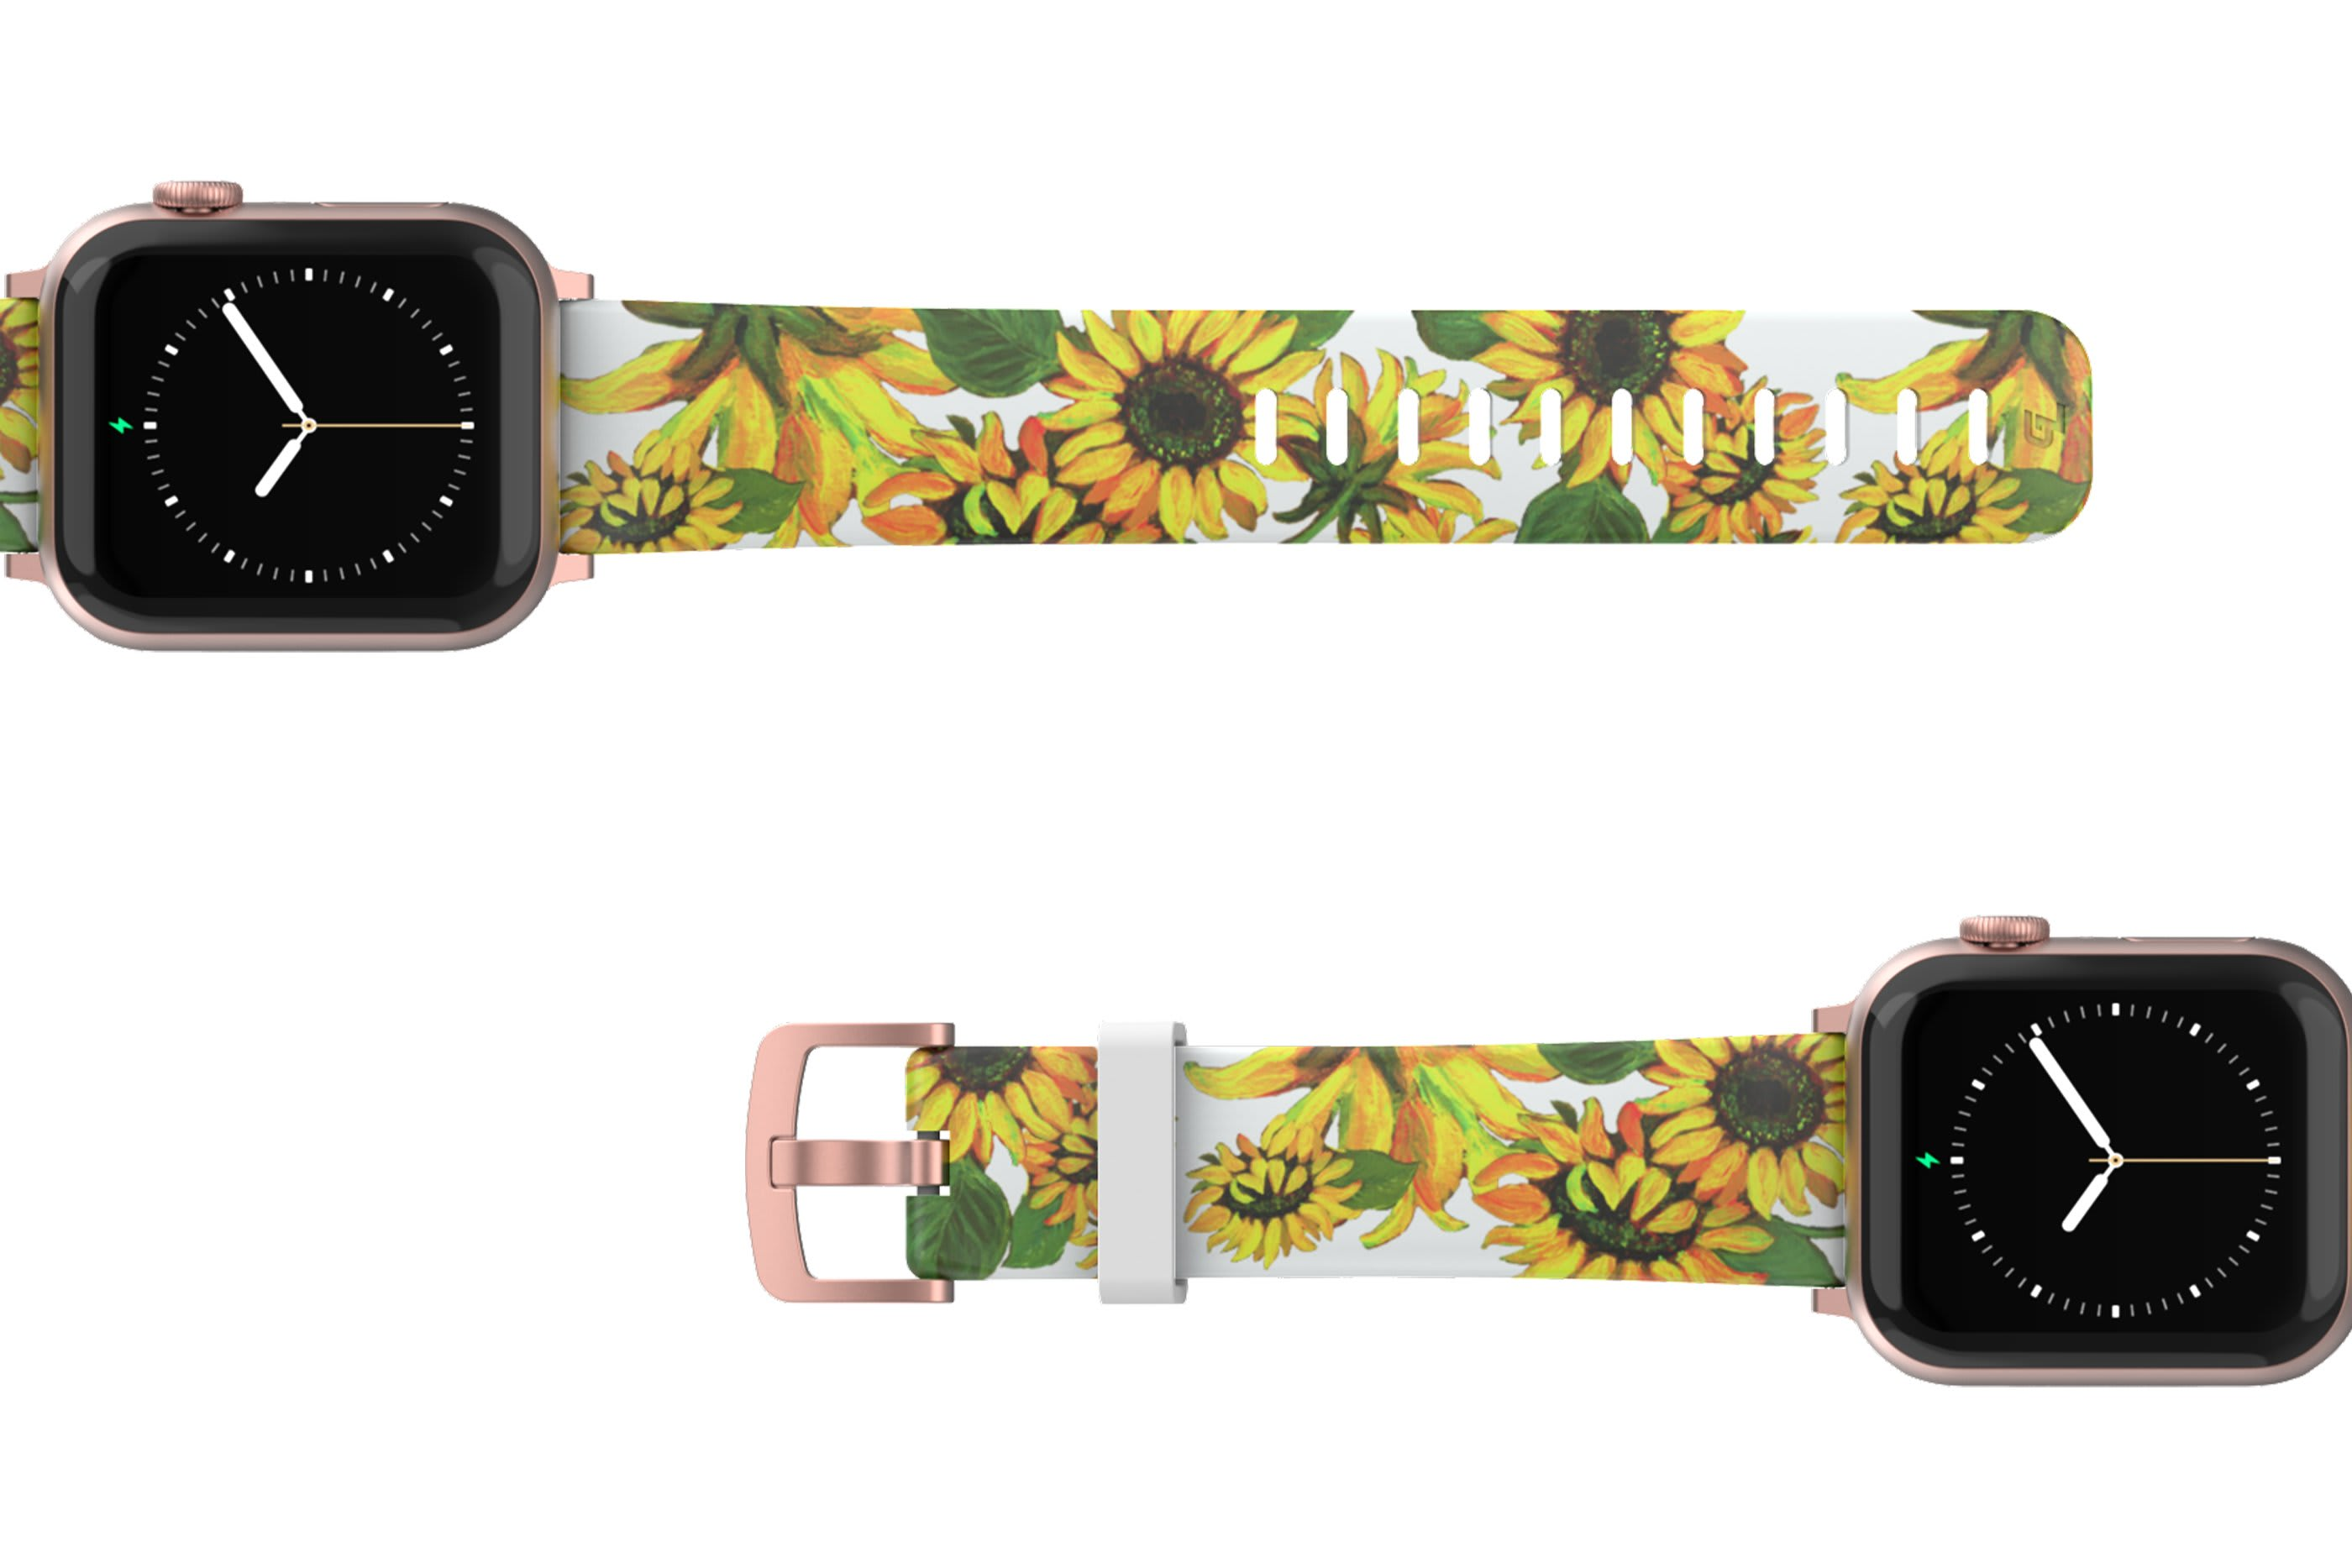 Sunflower Apple Watch Band with rose gold hardware viewed top down